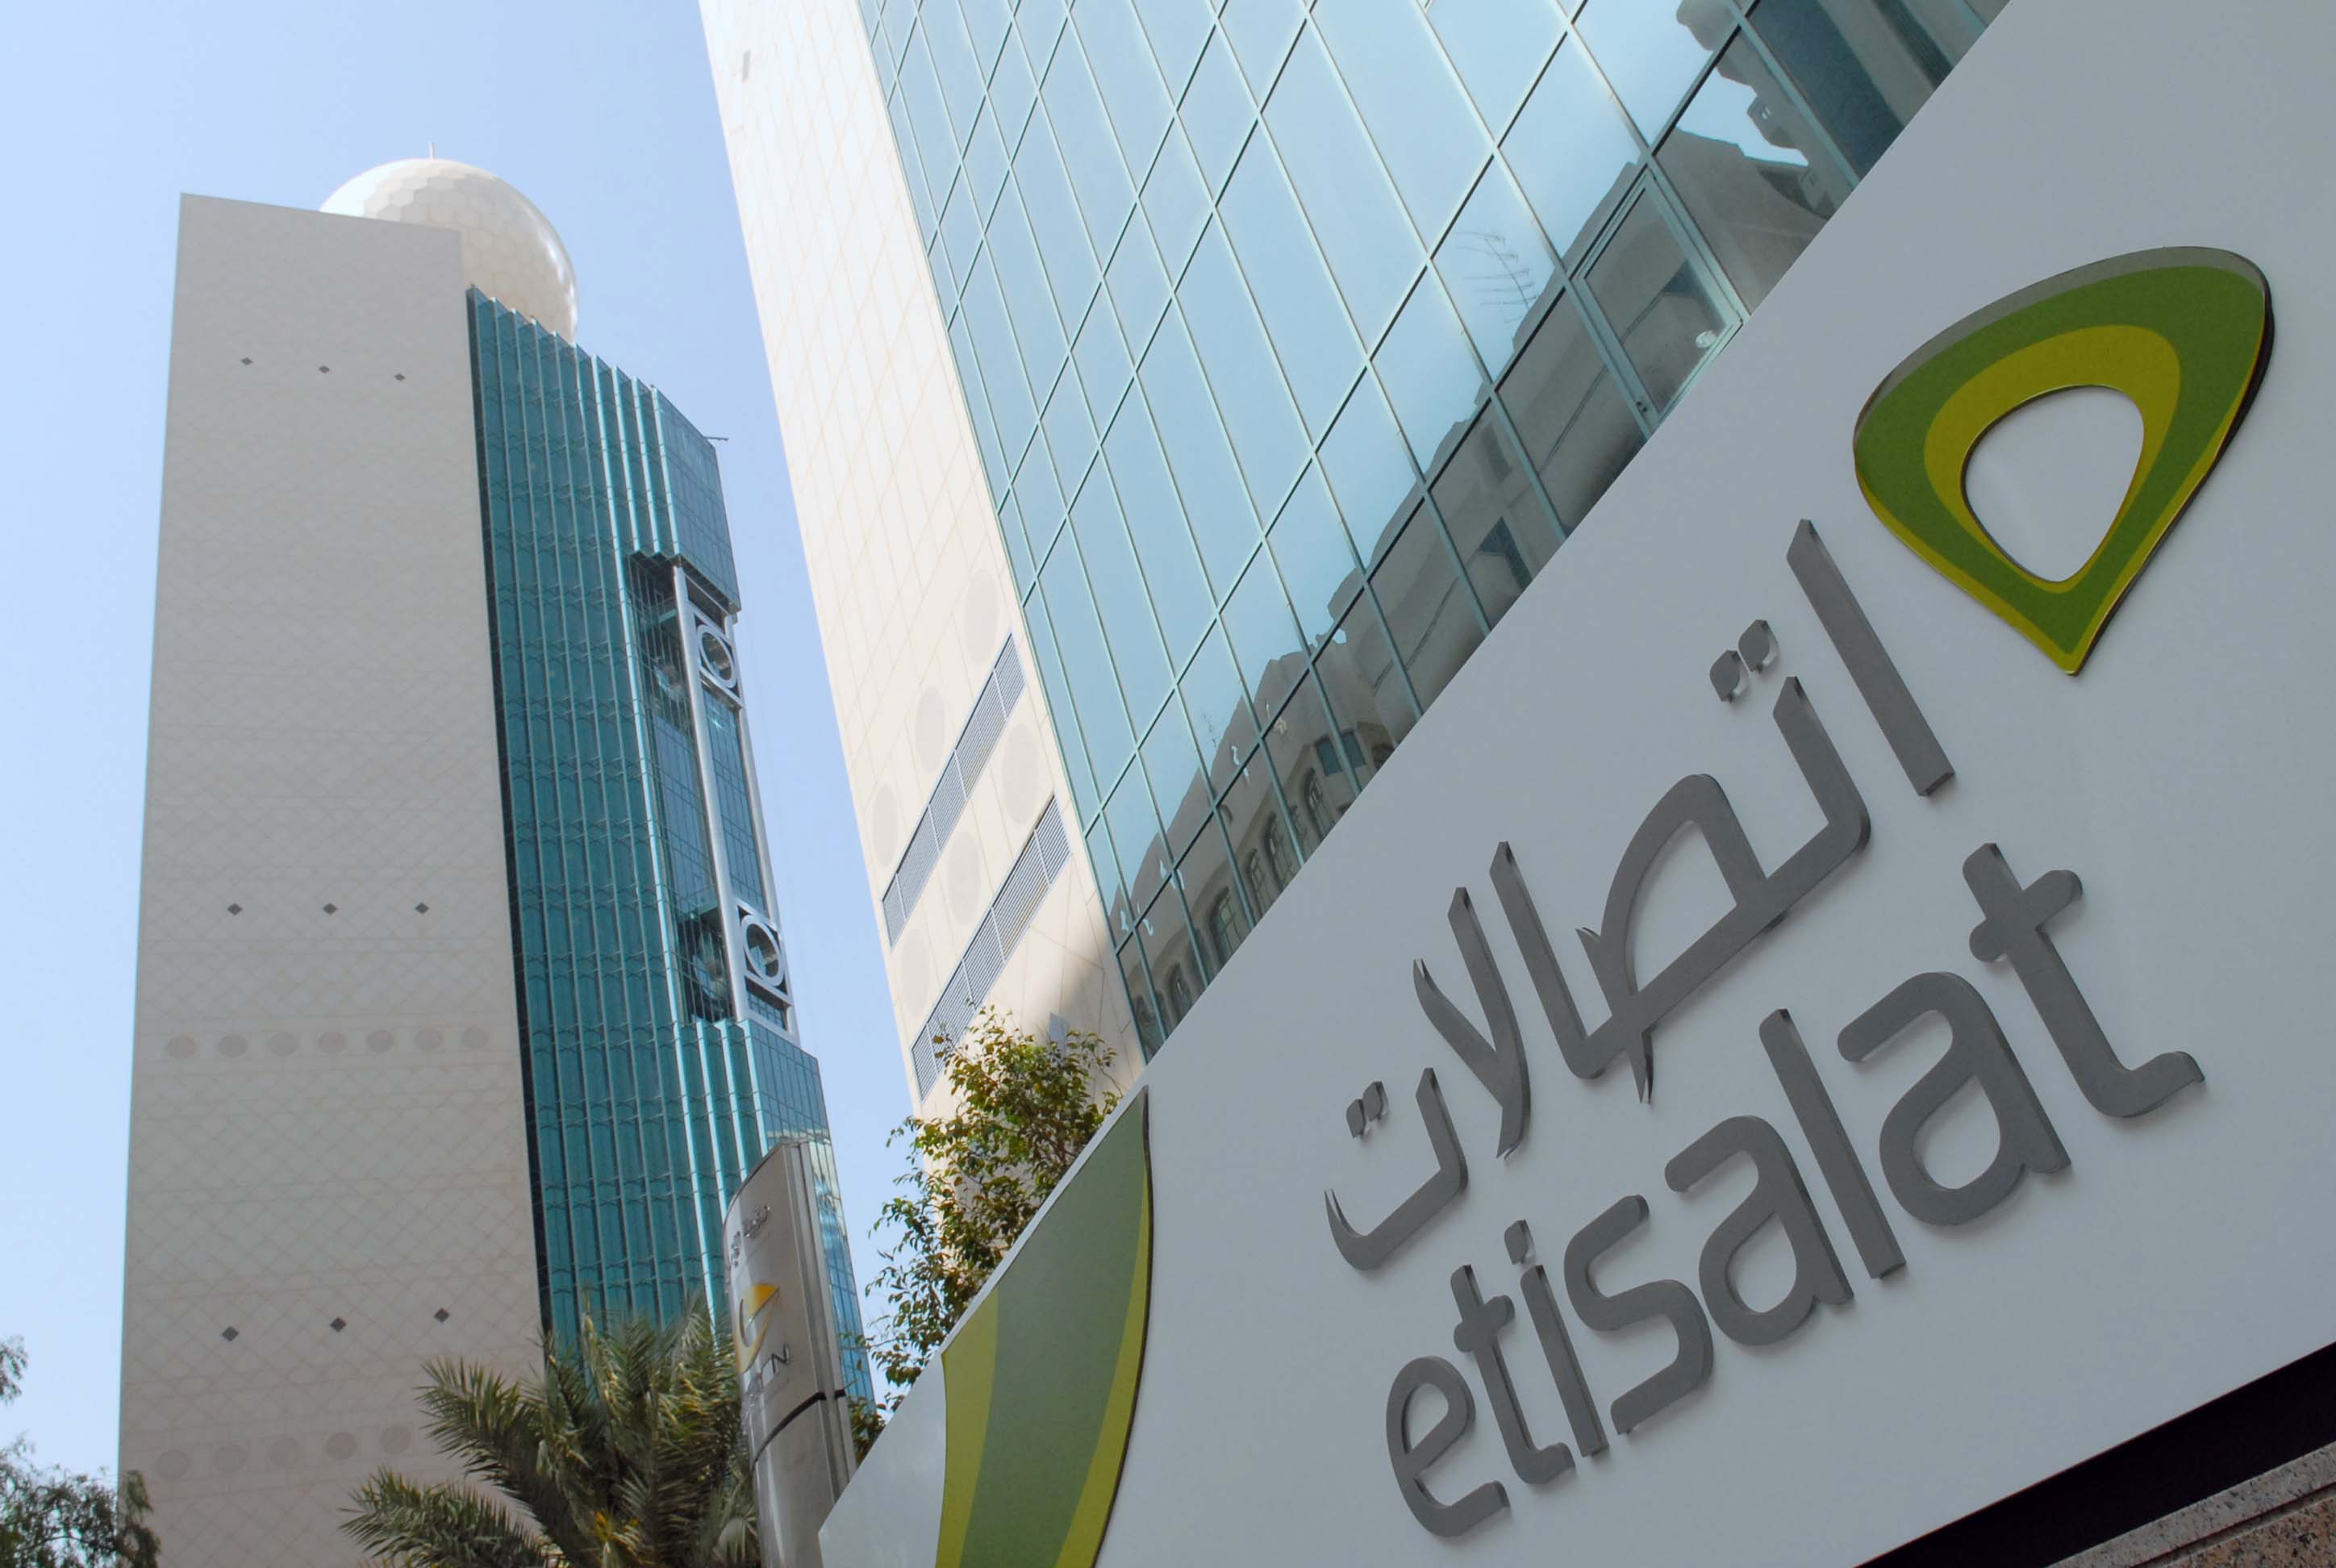 Etisalat announces readiness of AAE-1 subsea cable